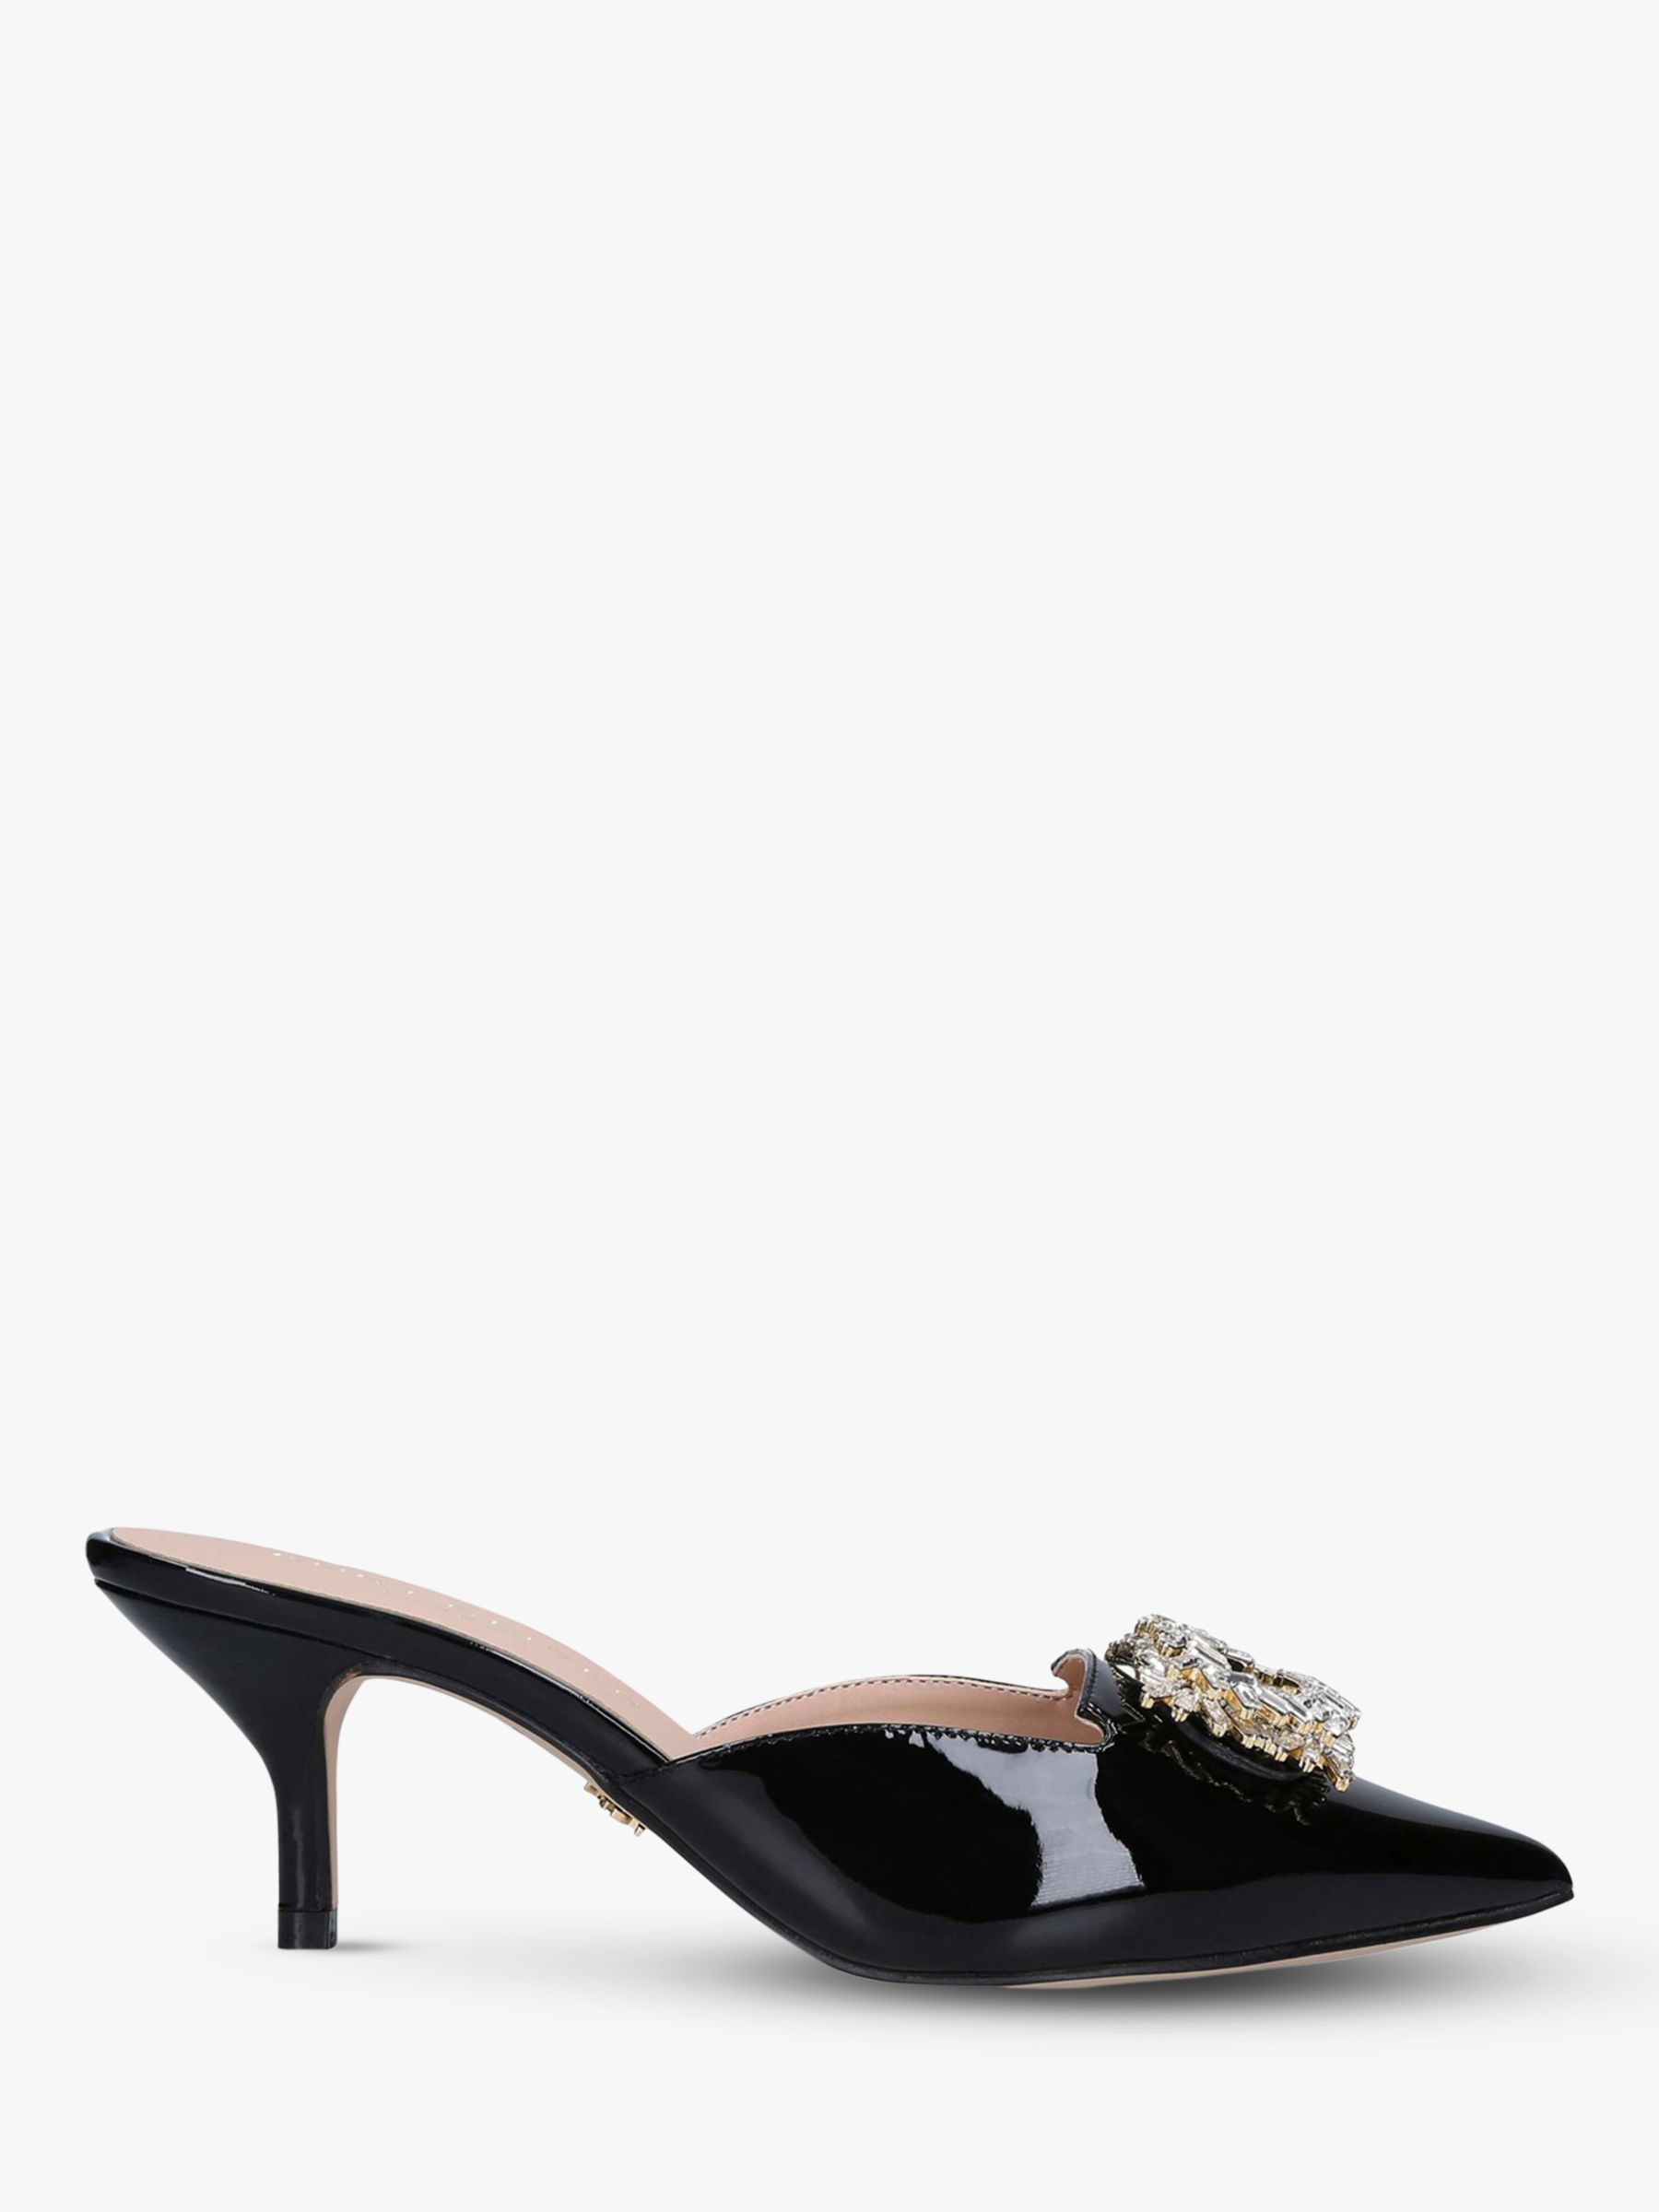 Kurt Geiger Kurt Geiger London Pia Jewel Mule Court Shoes, Black